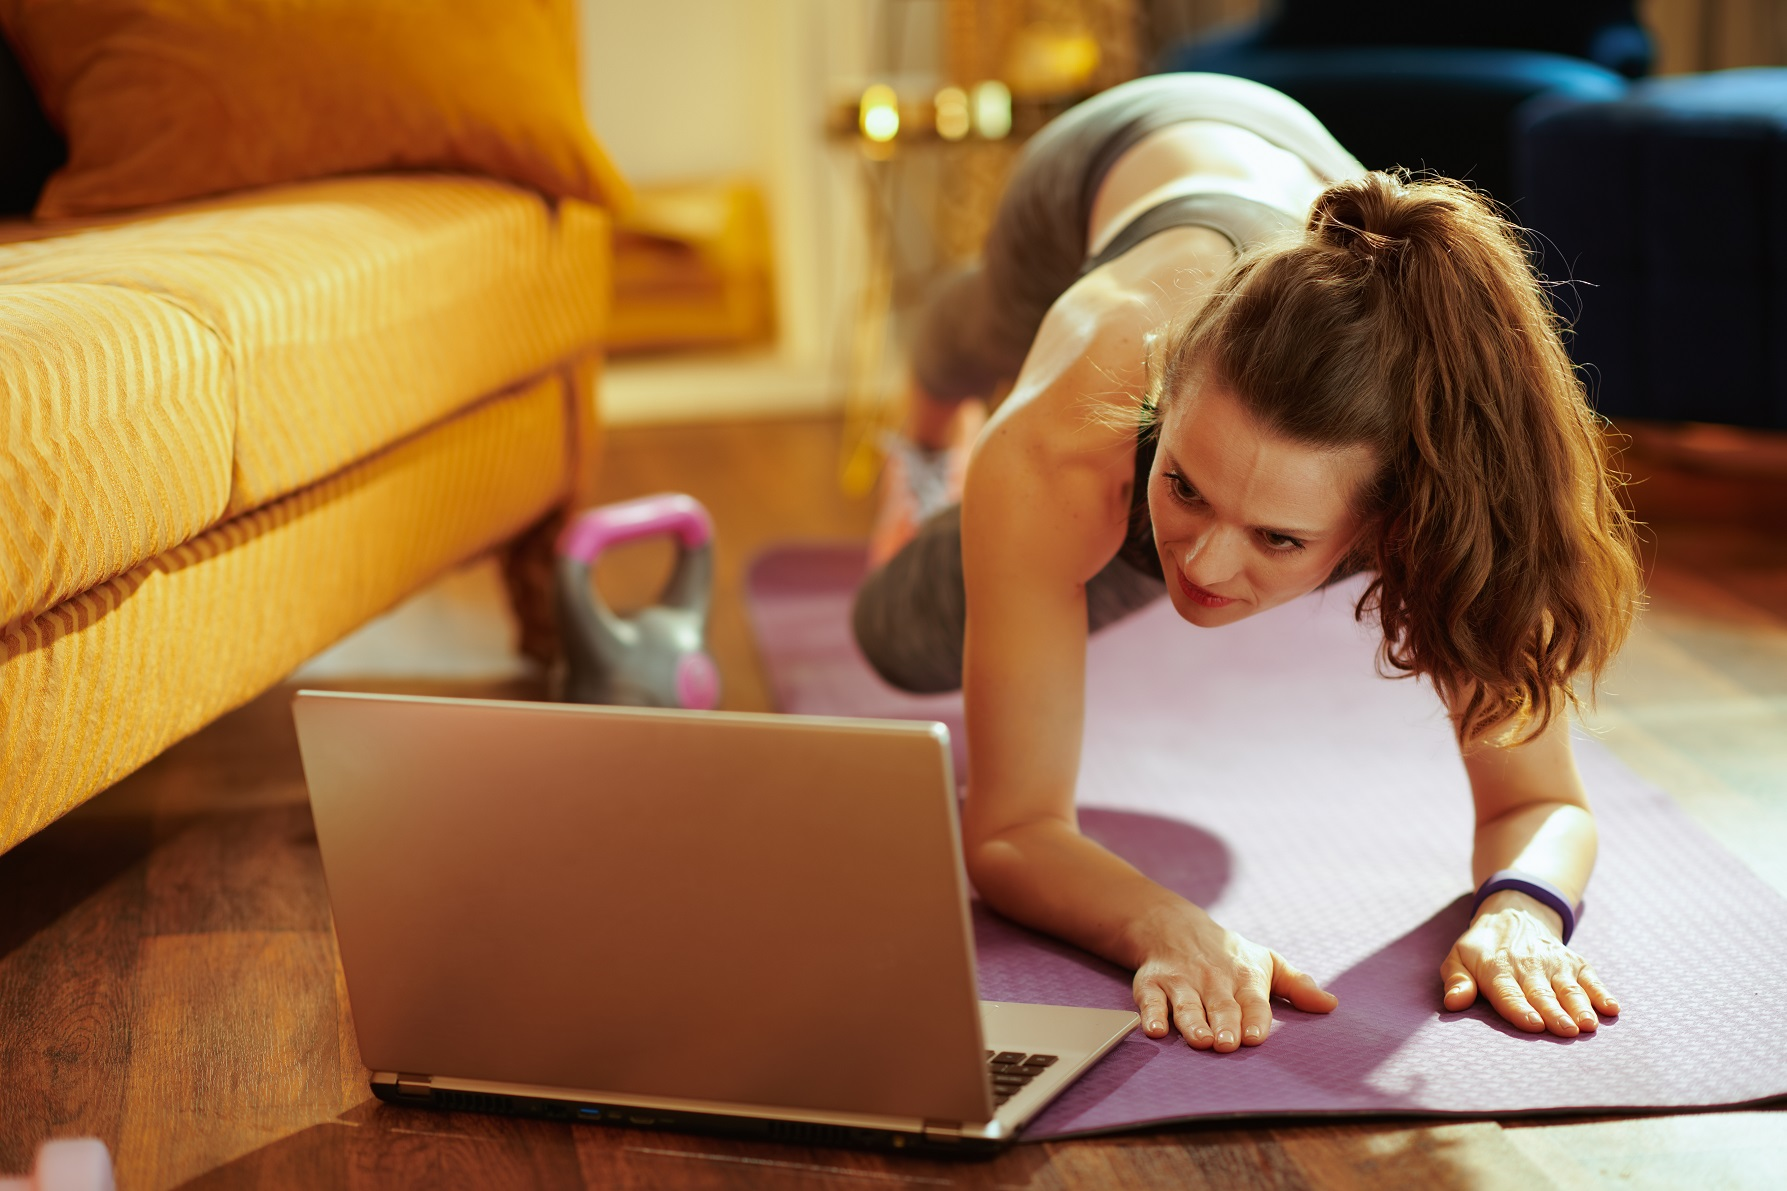 fit woman in fitness clothes in the modern house using online personal fitness trainer service in laptop and doing cardio exercises on fitness mat.